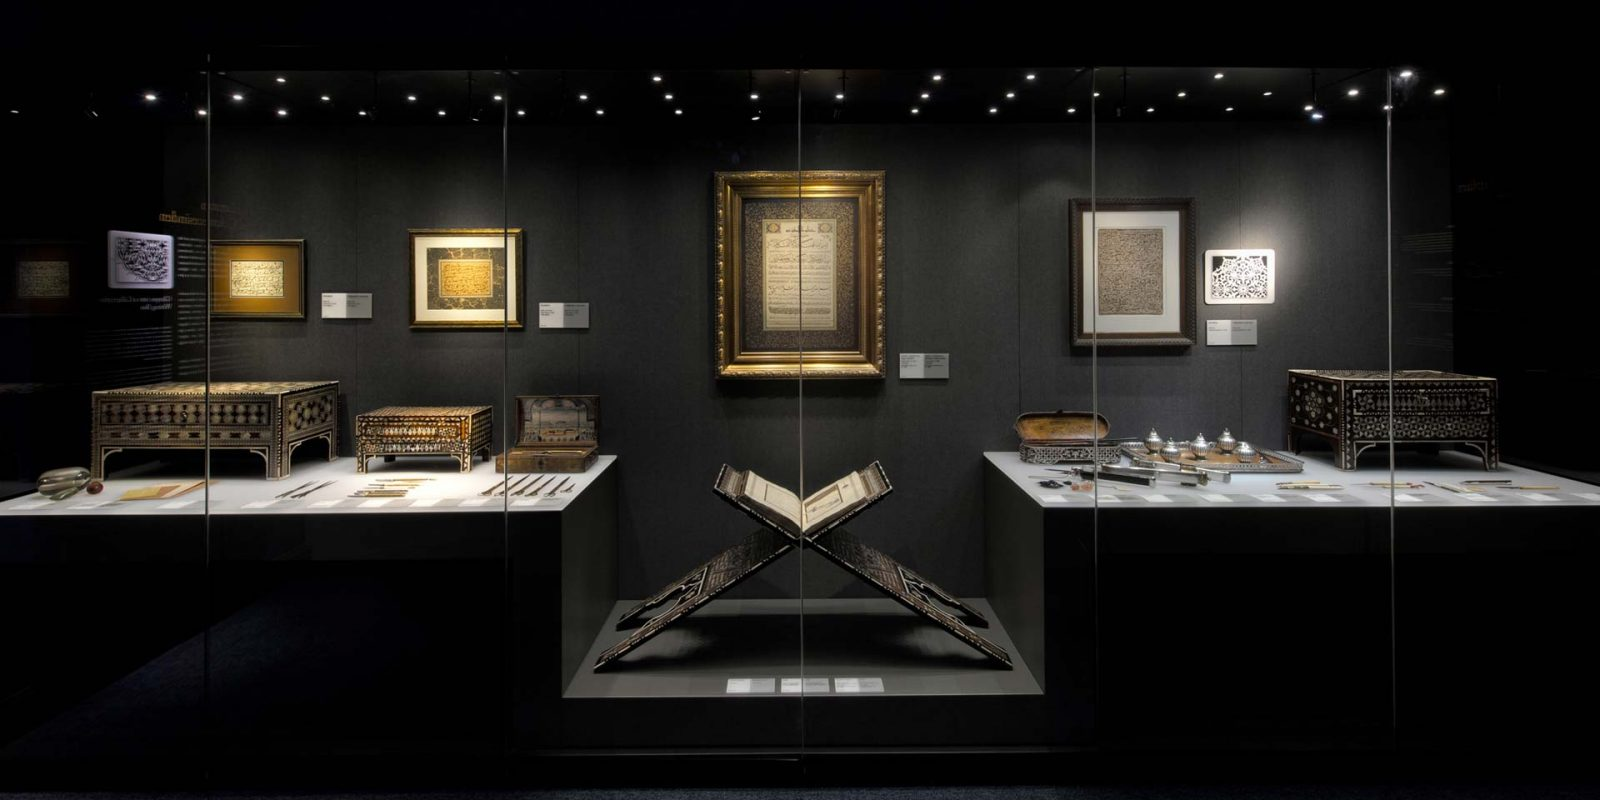 COLLECTION OF THE ARTS OF THE BOOK AND CALIGRAPHY